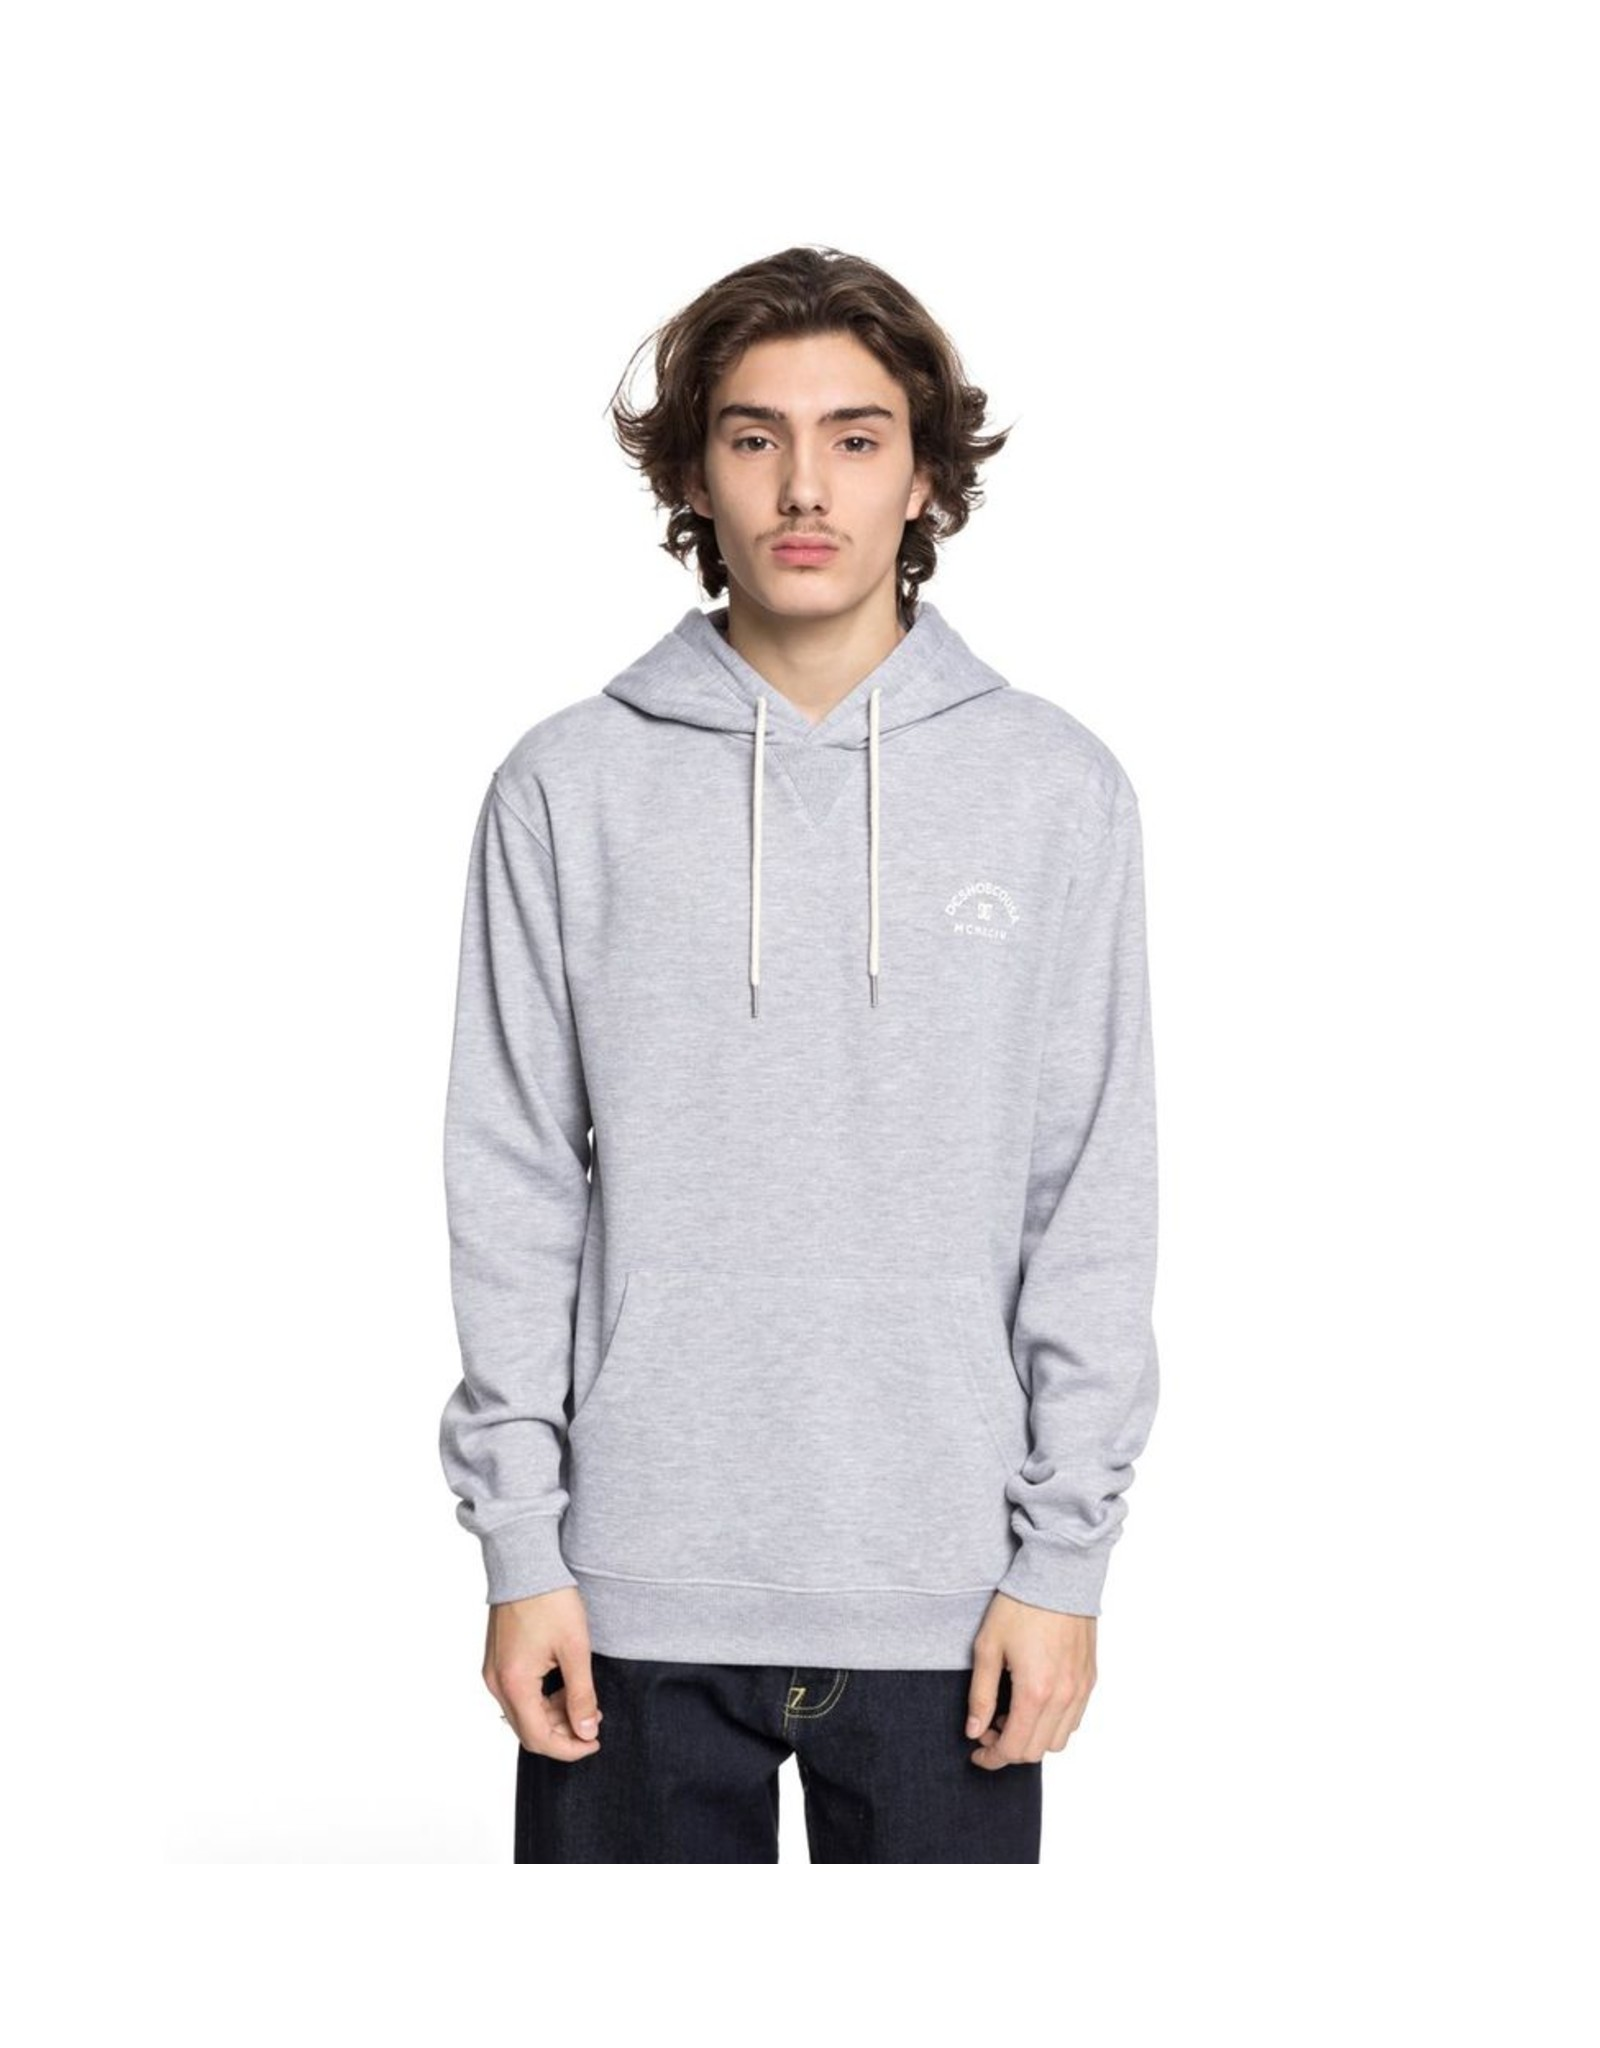 DC DC - Rebel 3 Hoodie - Grey Heather - M